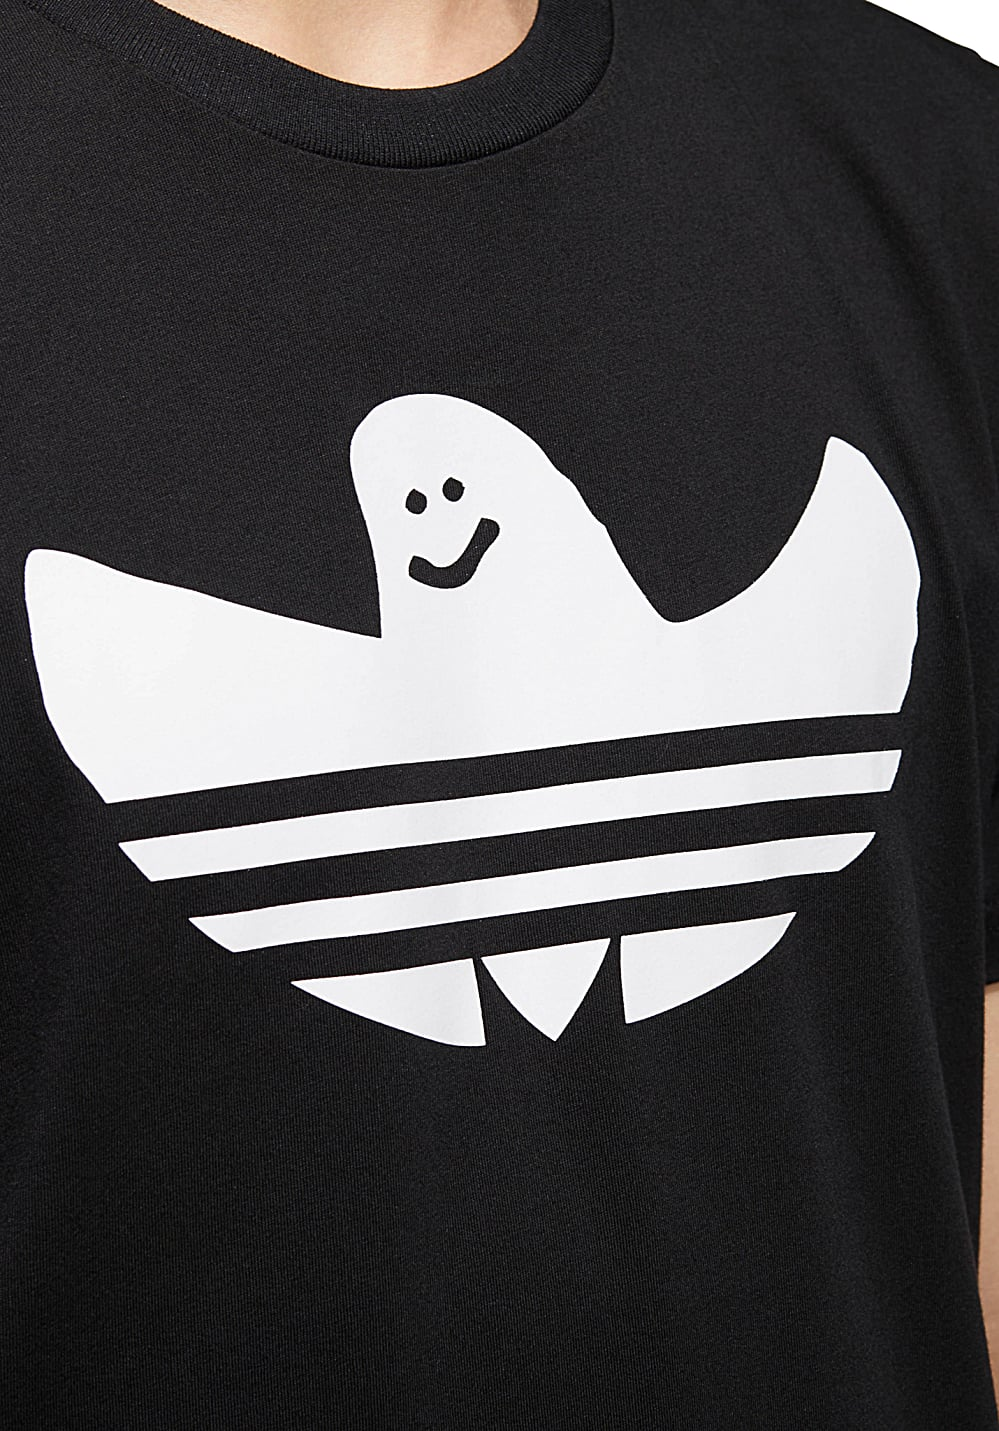 34285f23 Next. Adidas Skateboarding. Solid Shmoo - T-Shirt for Men. €32.95. incl.  VAT plus shipping costs